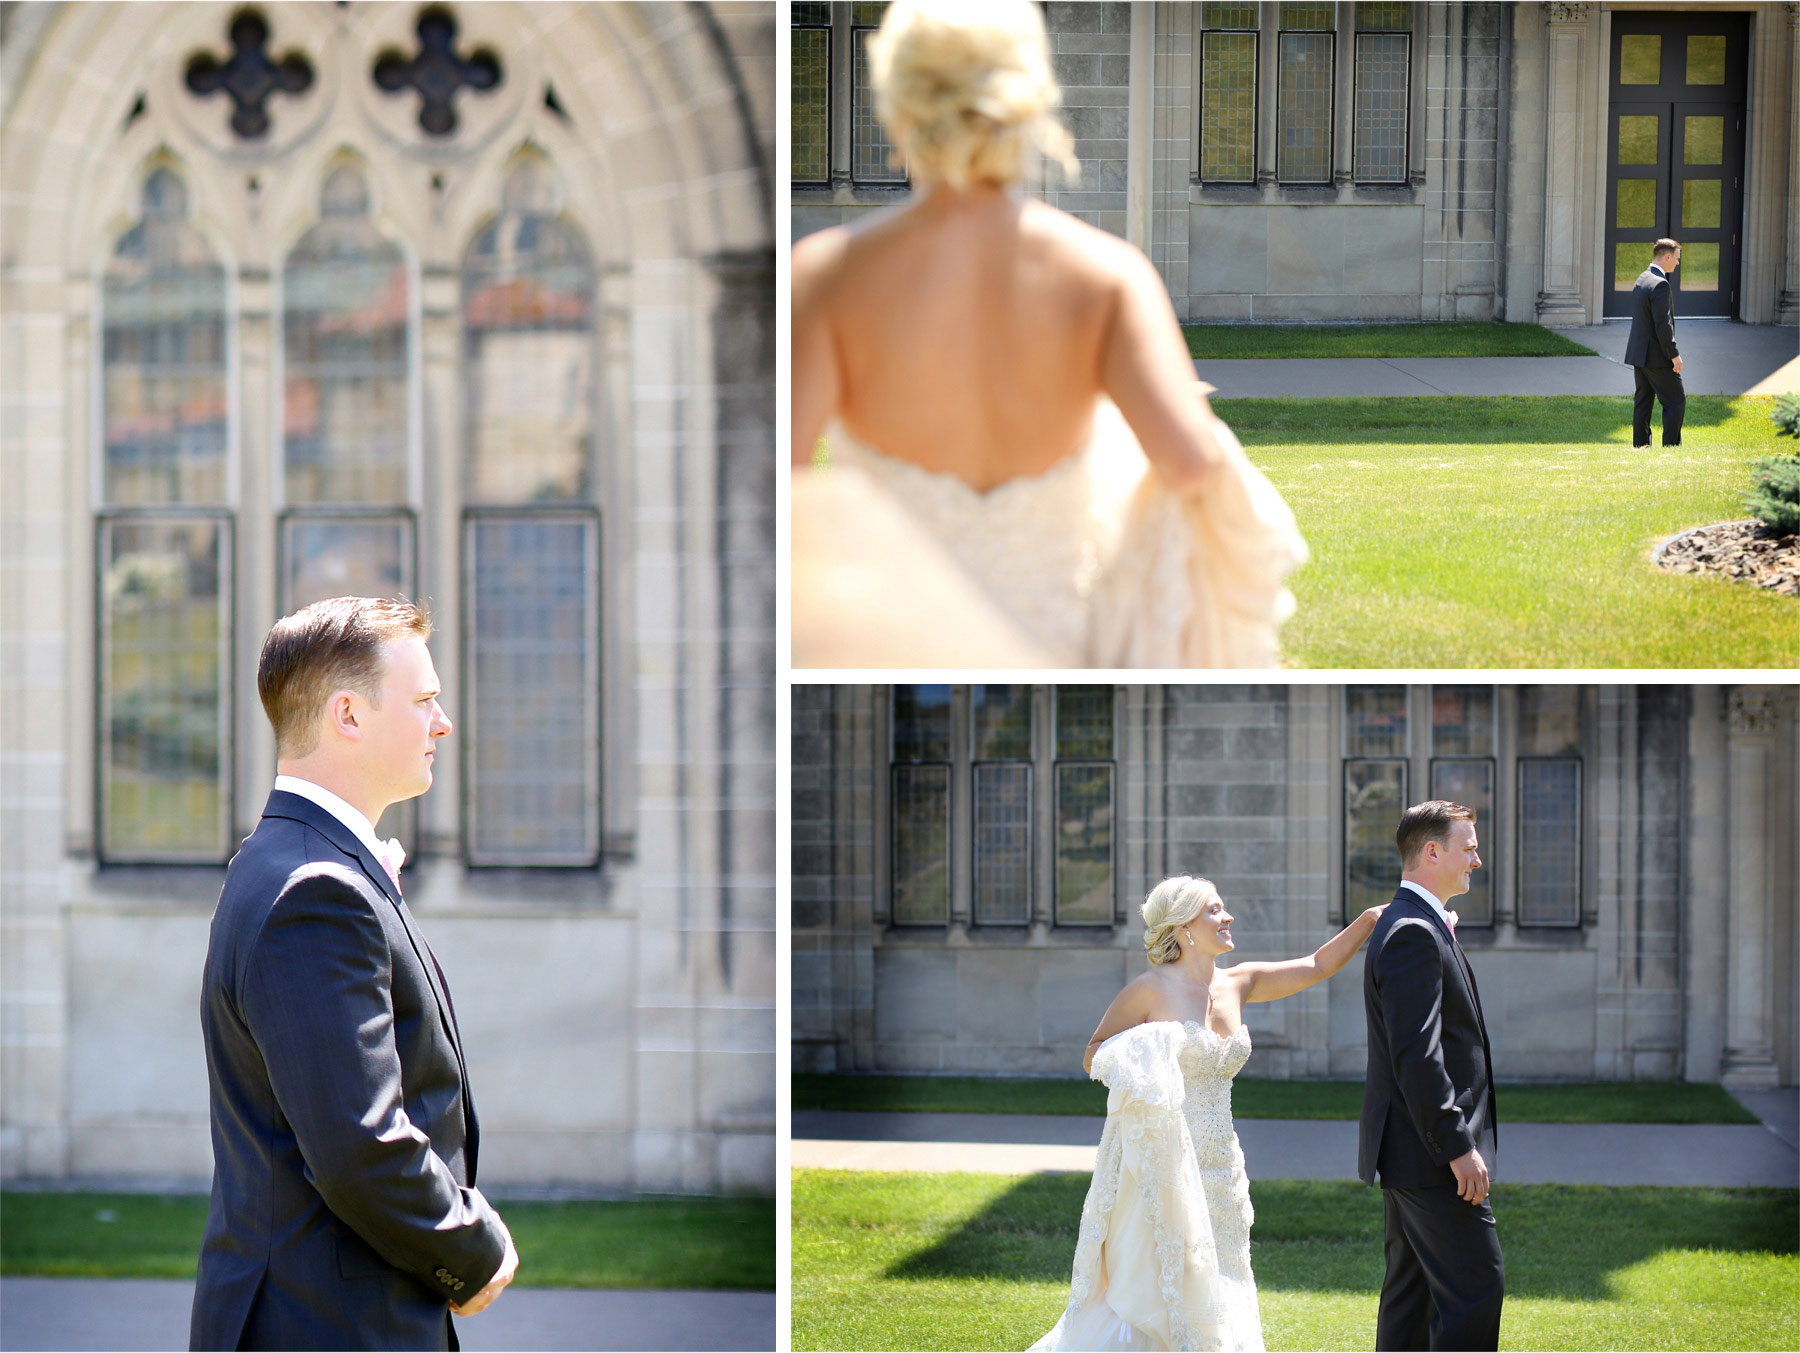 05-Duluth-Minnesota-Wedding-Photographer-by-Andrew-Vick-Photography-Summer-Cathedral-of-Our-Lady-of-the-Rosary-Church-First-Meeting-Bride-Groom-Courtyard-Lindsey-and-Adam.jpg